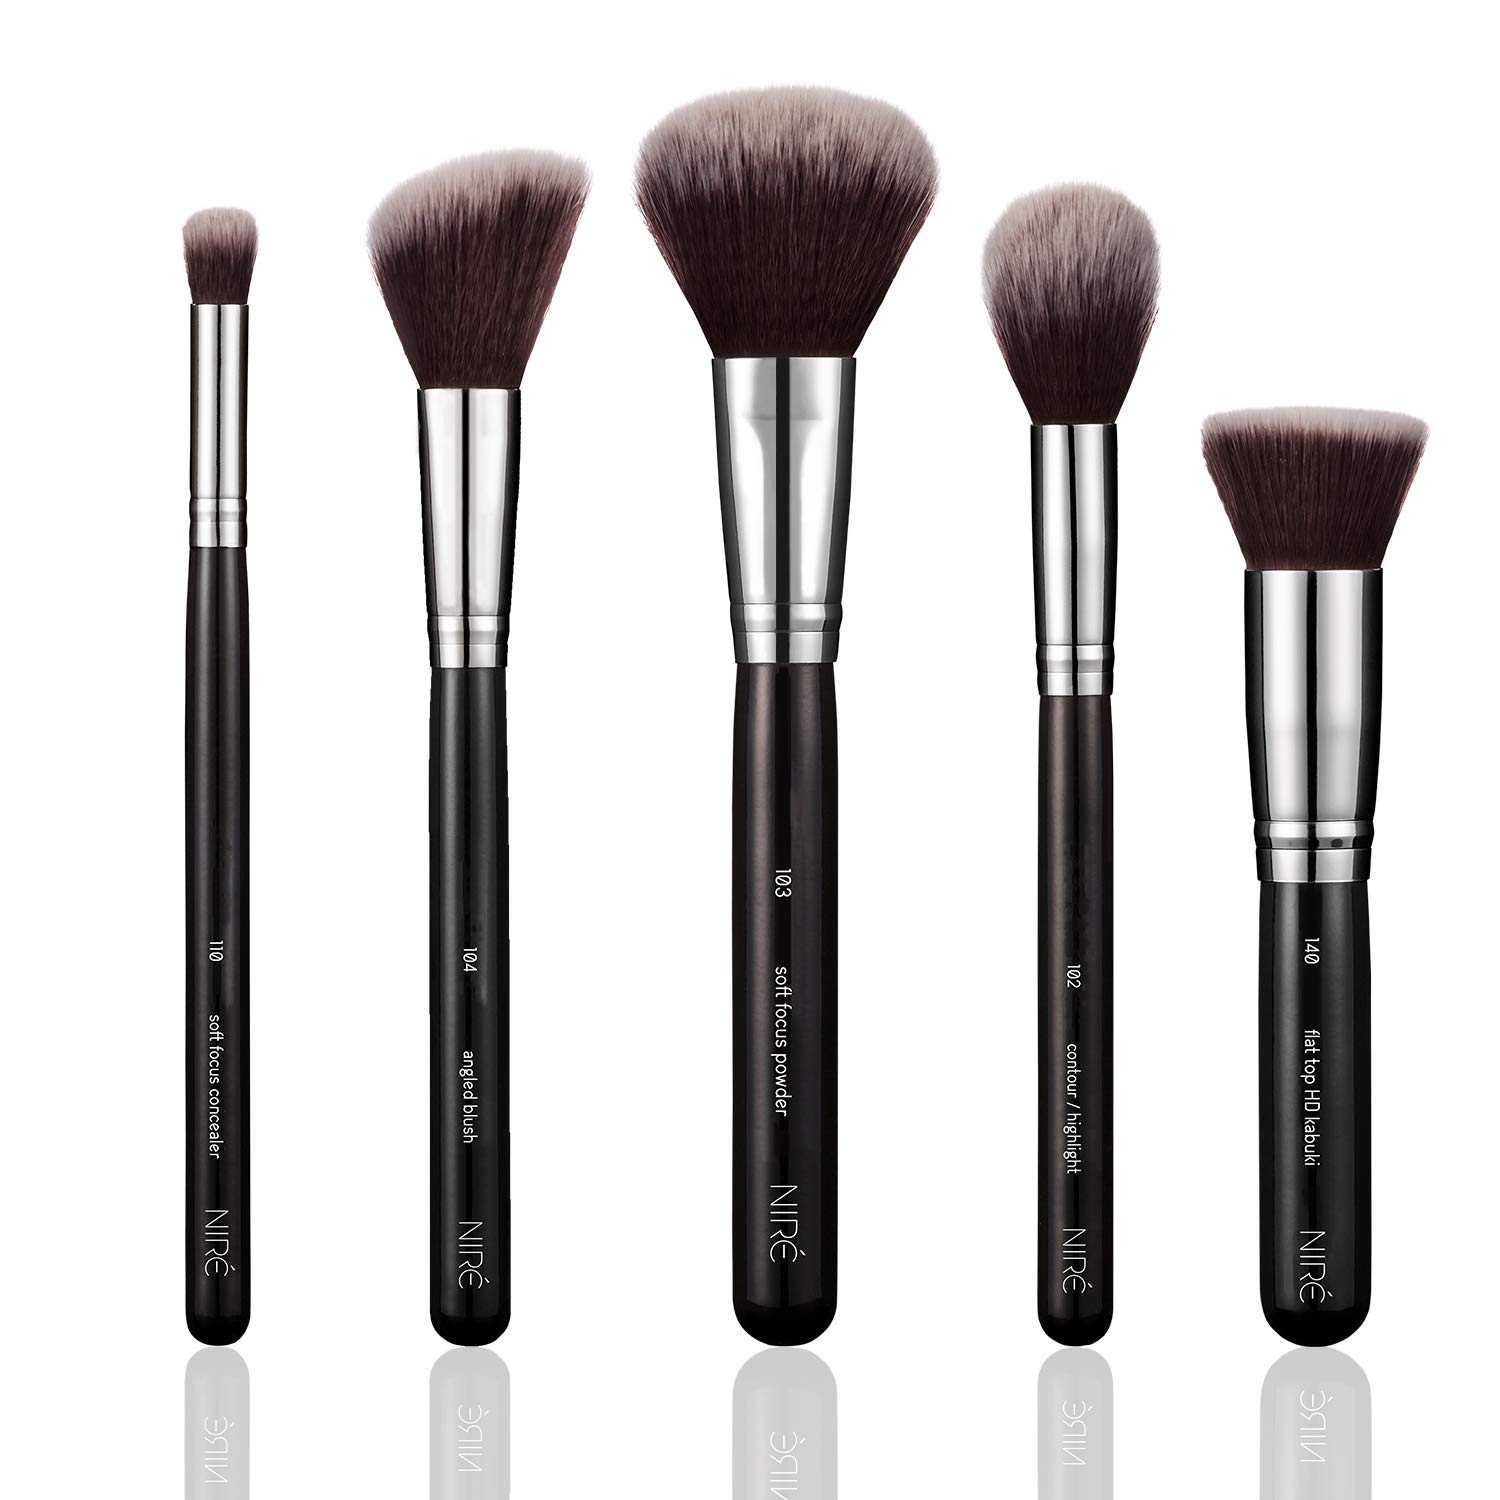 Niré Beauty Kabuki Brush for Foundation: Flat Top HD Kabuki Brush for Liquid, Cream and Mineral Foundations *** BONUS Mini Beauty Blender for a Full Coverage of the Under-Eye Area Luxe England